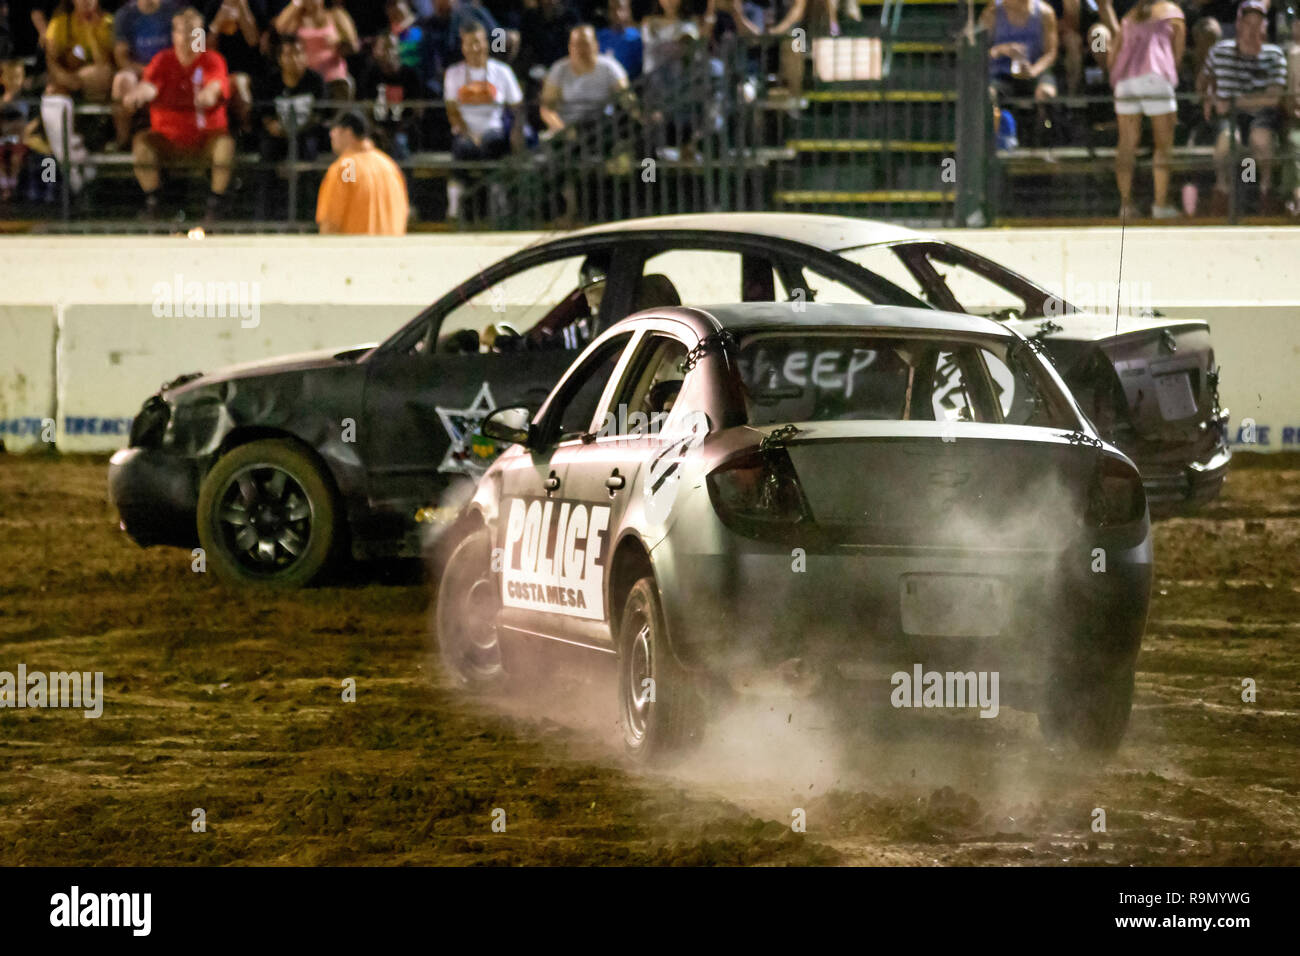 Cars head for a crash in a night time demo derby for police officer drivers at a Costa Mesa, CA, stadium. - Stock Image